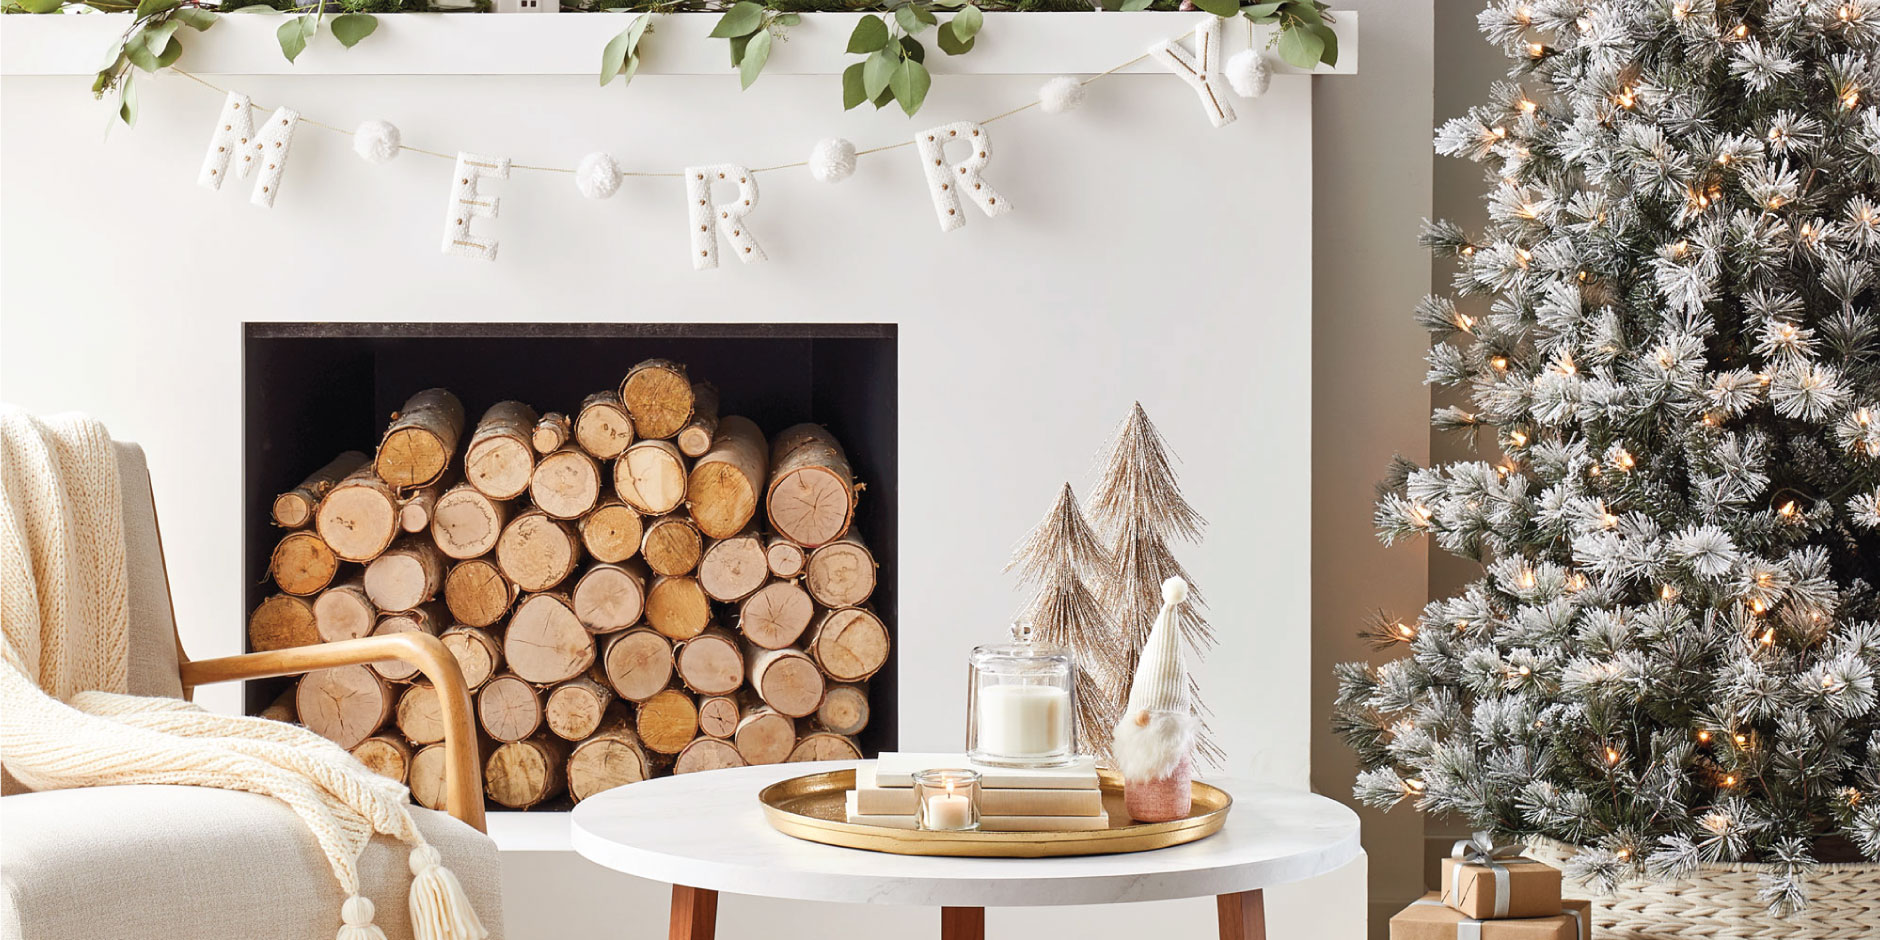 A cozy living room scene including neutral-colored decor and a merry garland across a mantle